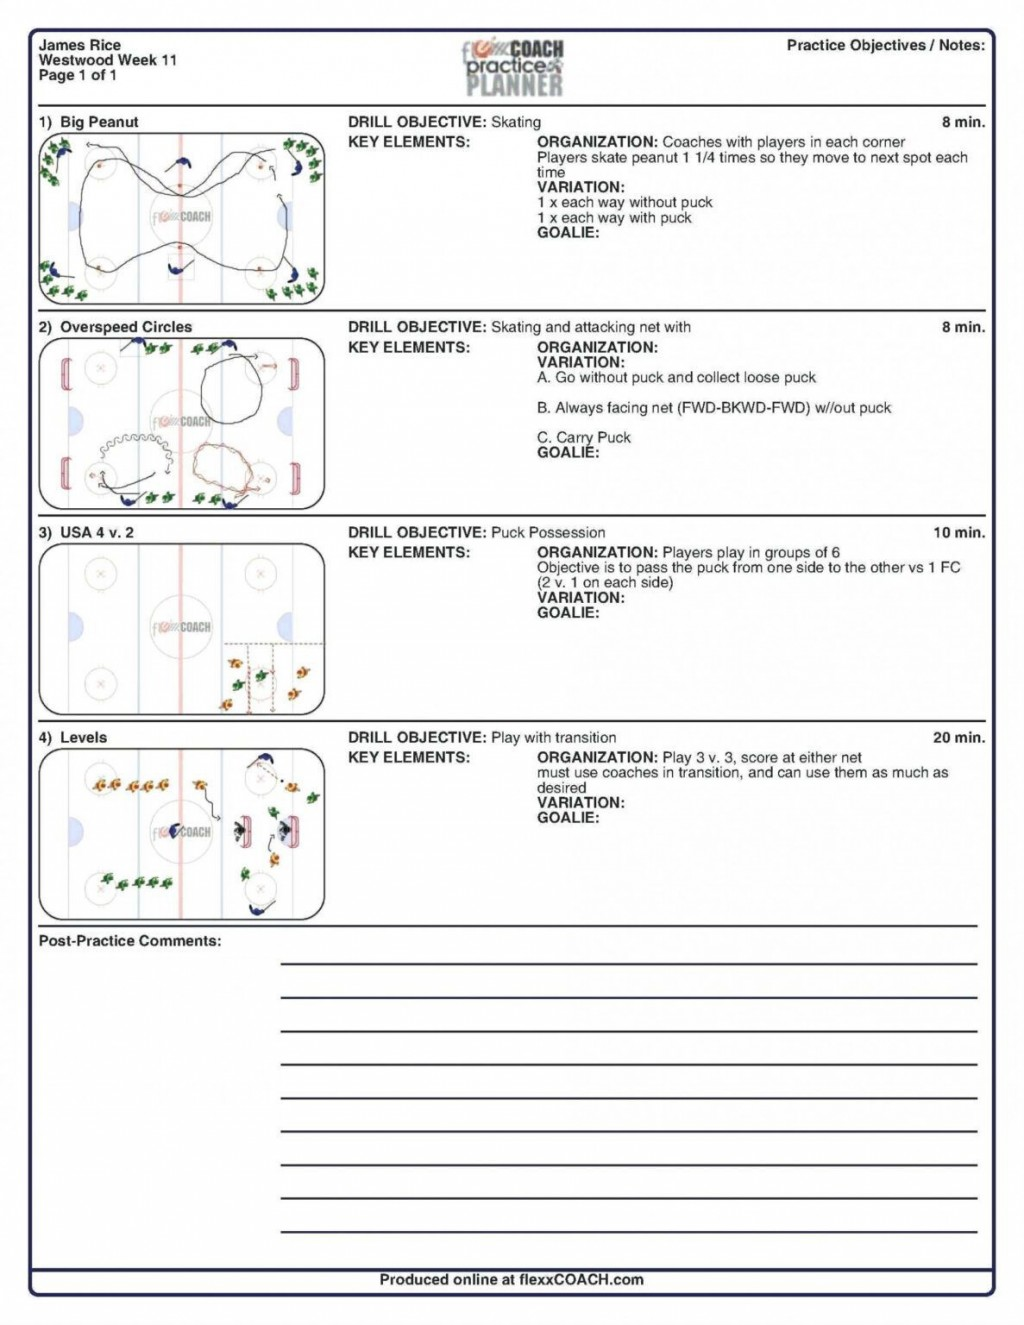 006 Dreaded Basketball Practice Plan Template High Def  Pdf Fillable Google DocLarge